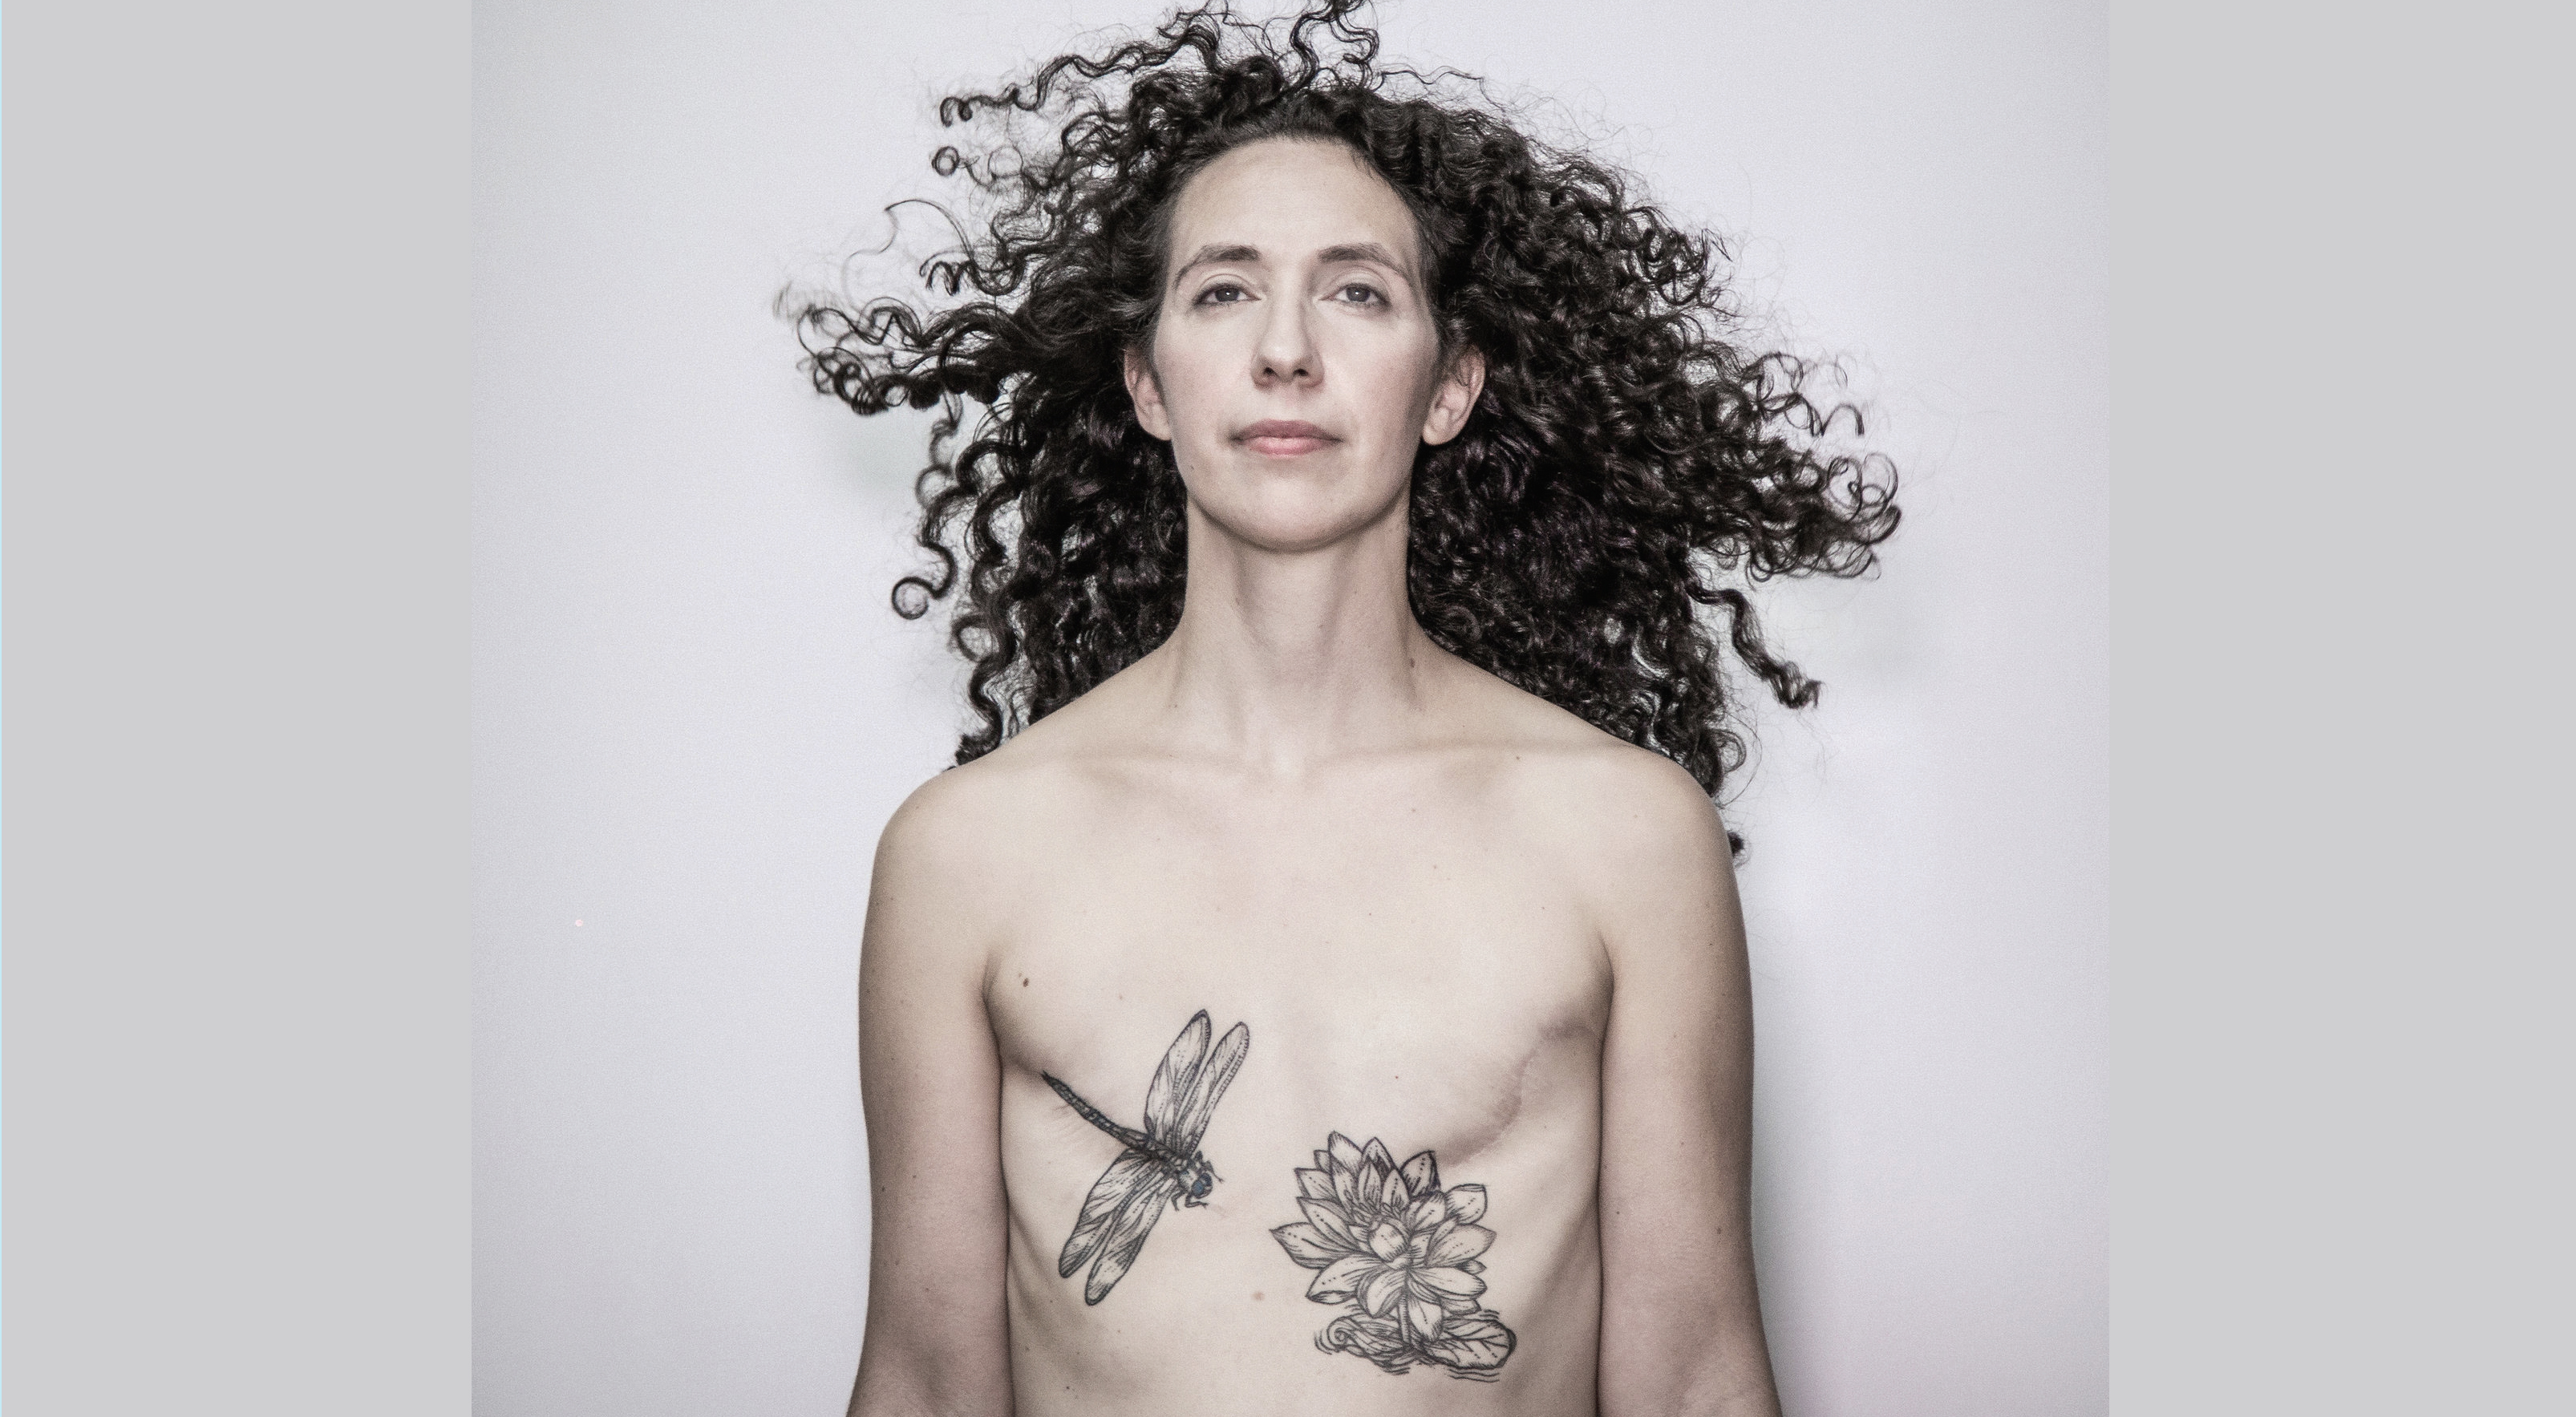 REBECCA PINE